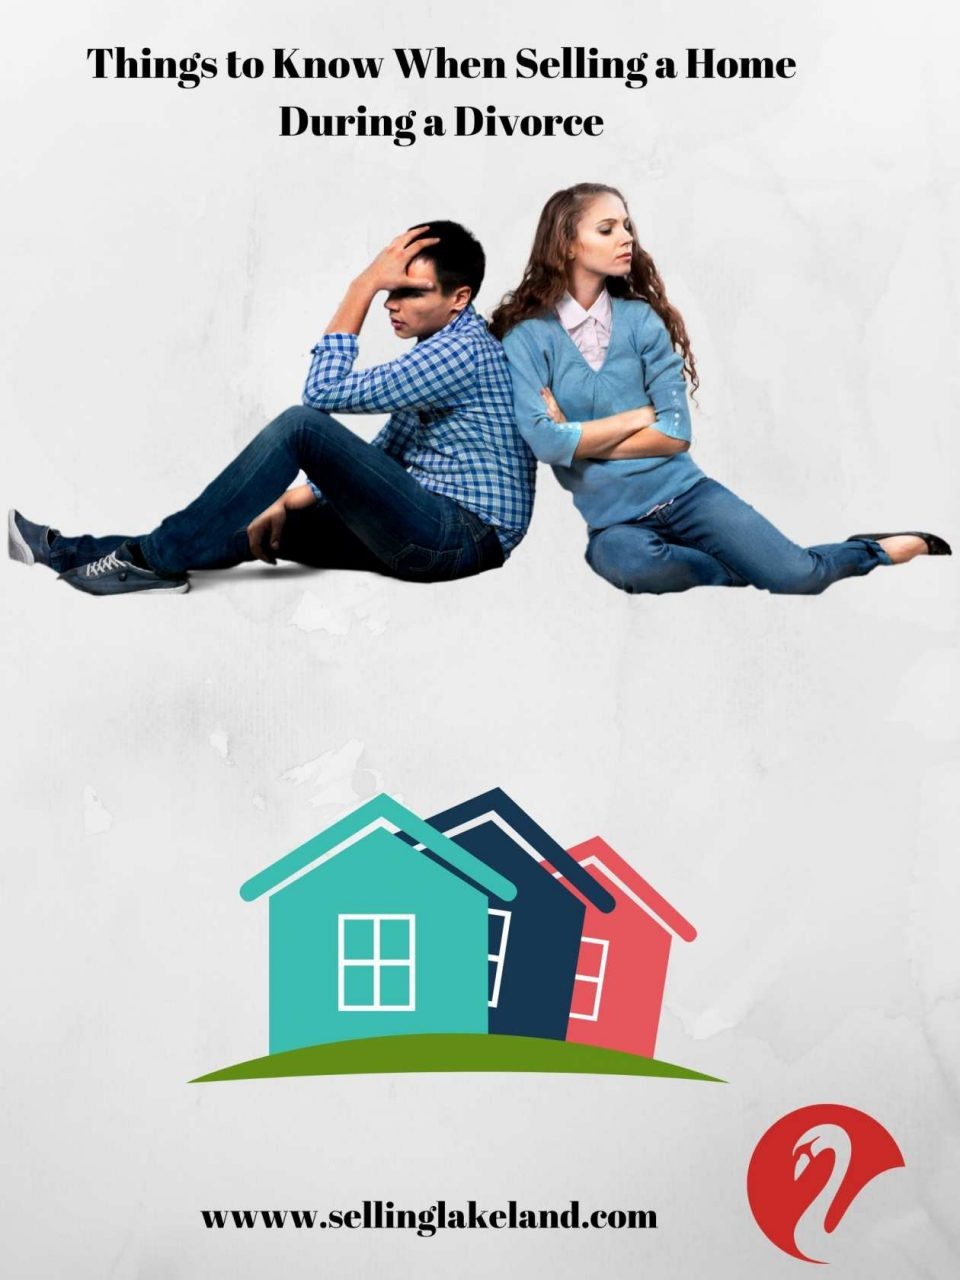 What to do when selling a home during divorce